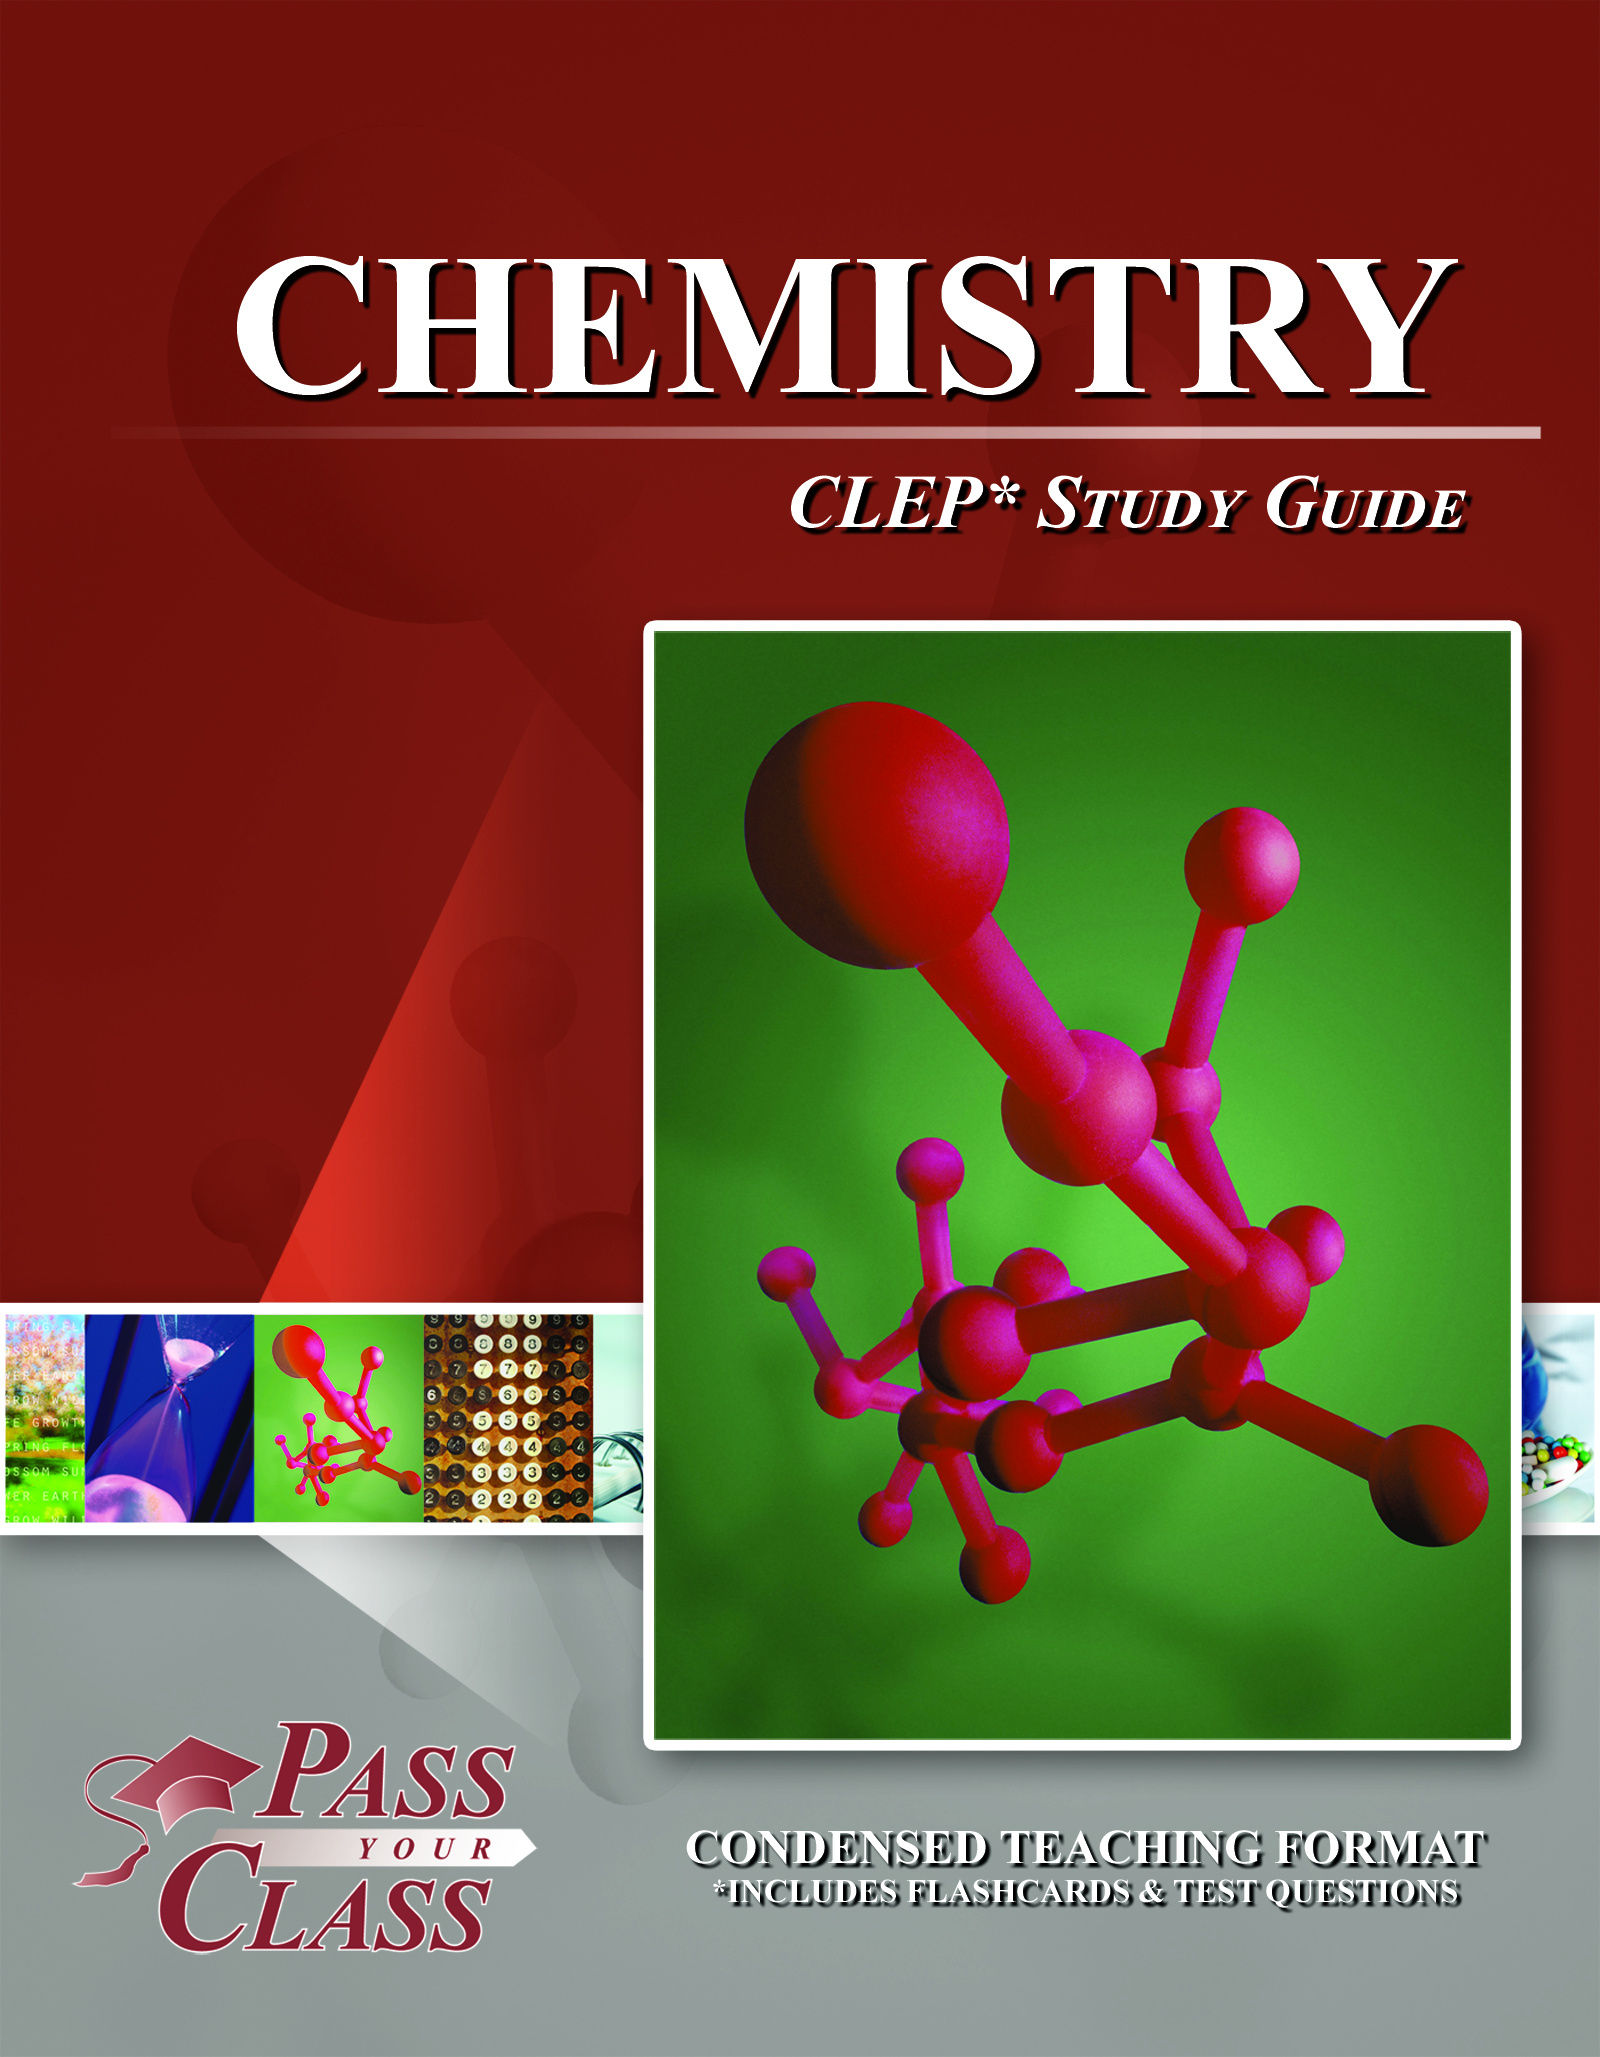 CLEP Chemistry Test Study Guide